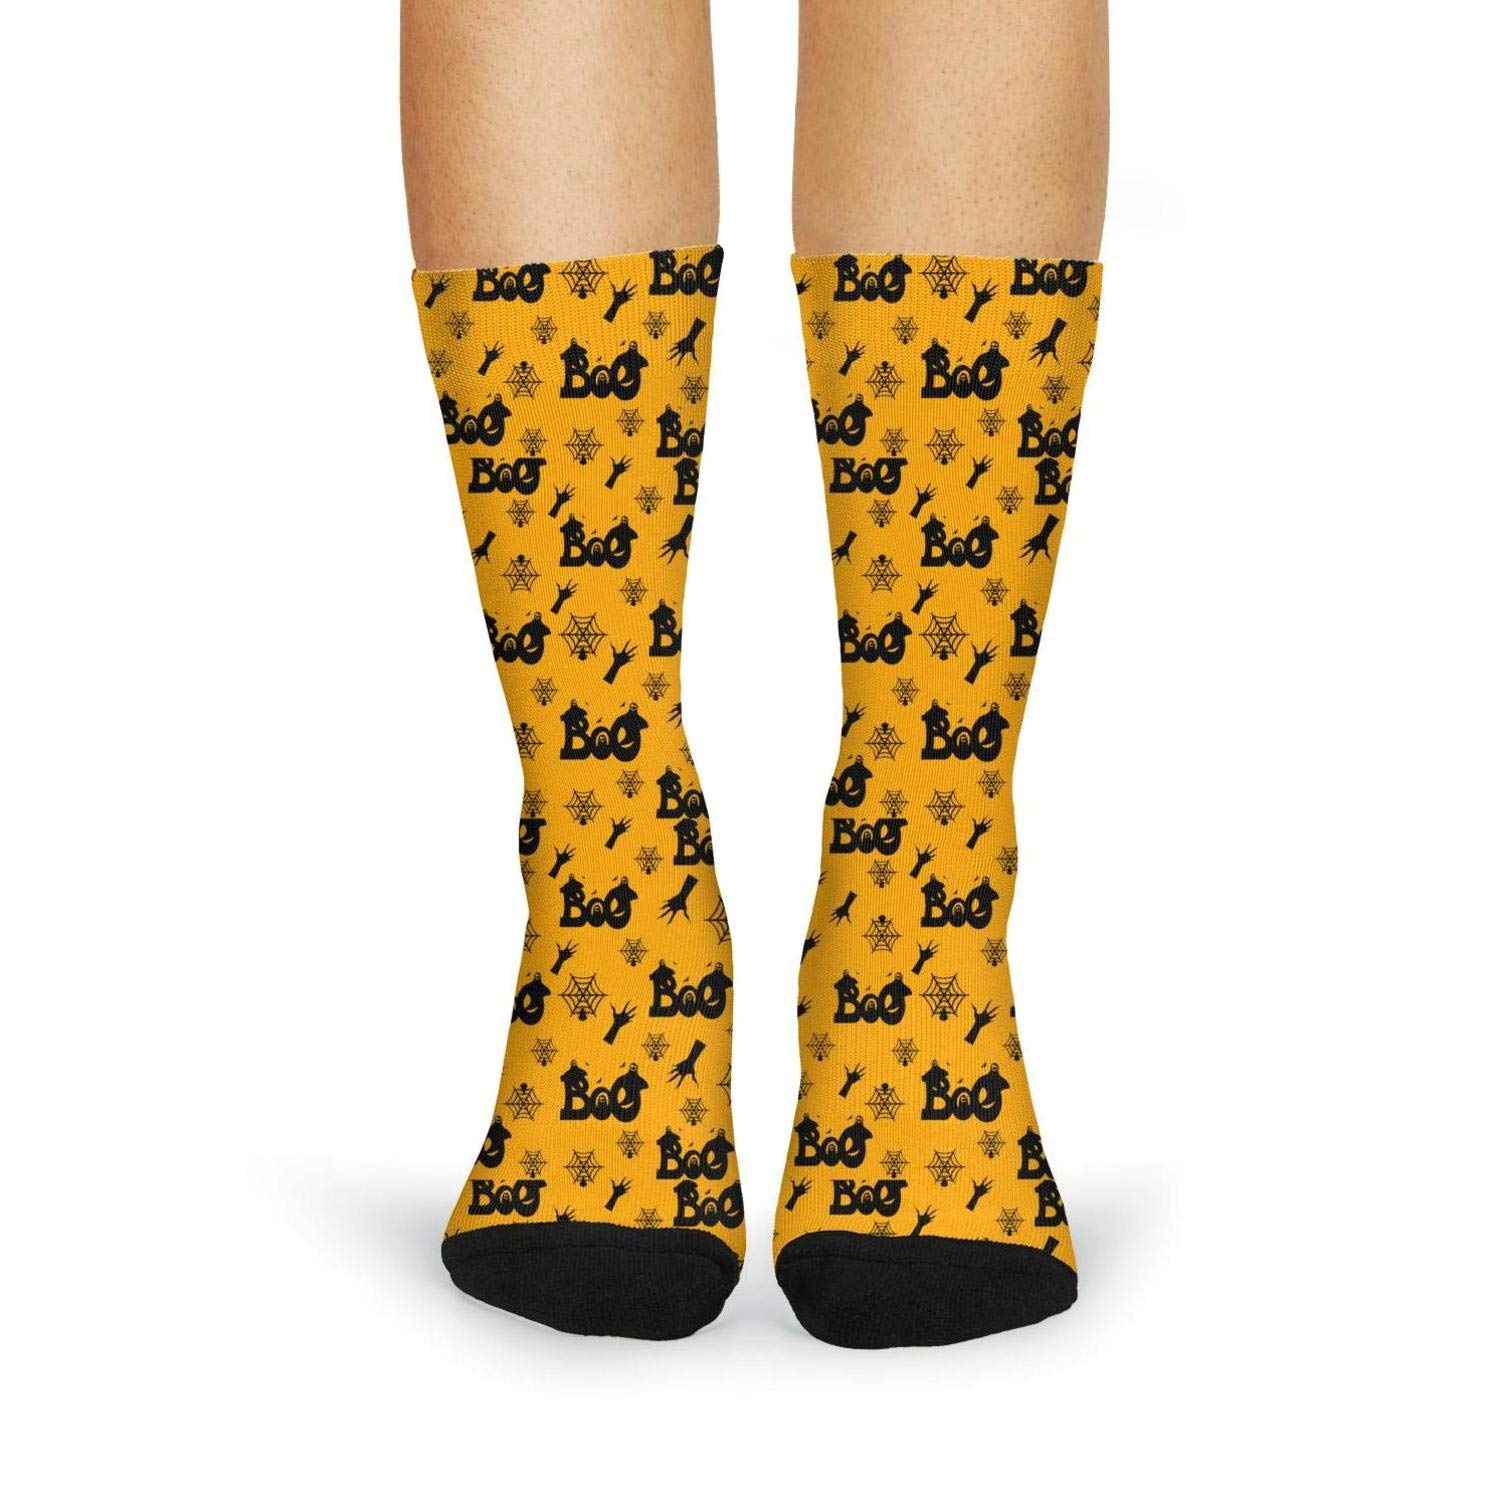 Womens Winter Socks Halloween with Boo Ghost Yellow Background Cool Graphic Thick Crew Socks for Sports